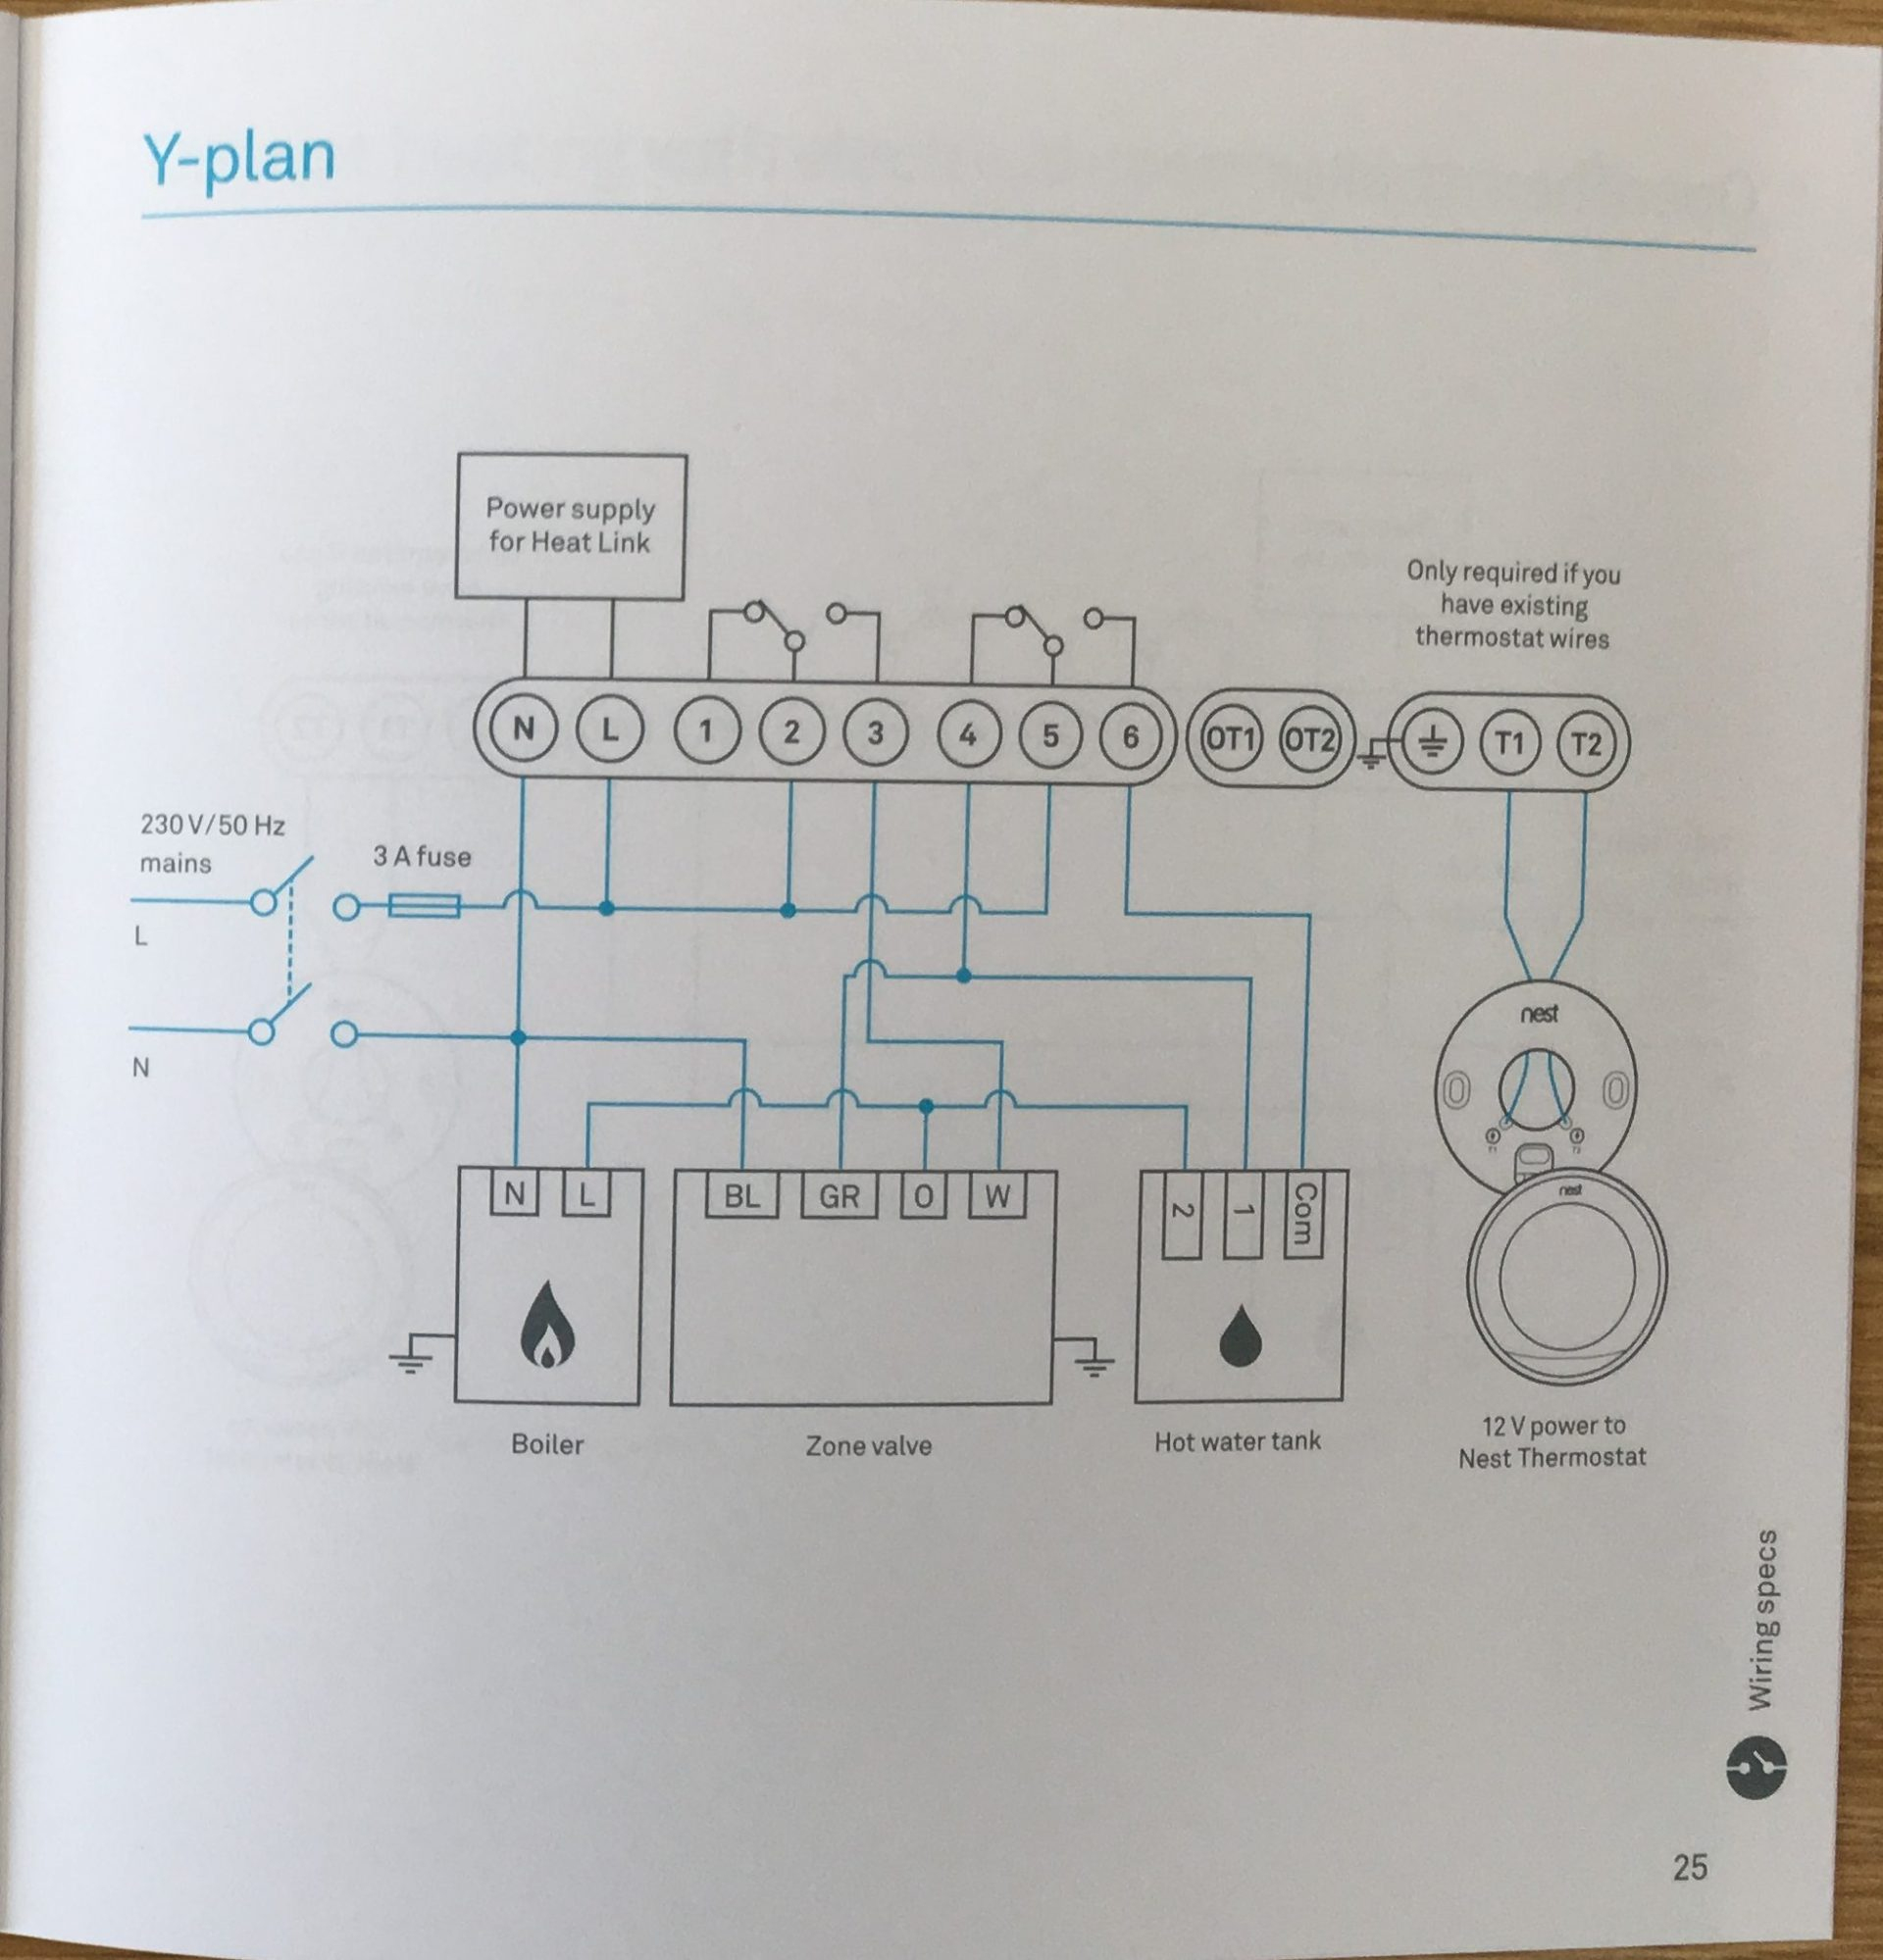 How To Install The Nest Learning Thermostat (3Rd Gen) In A Y-Plan - Wiring Diagram For Nest Thermostat Uk